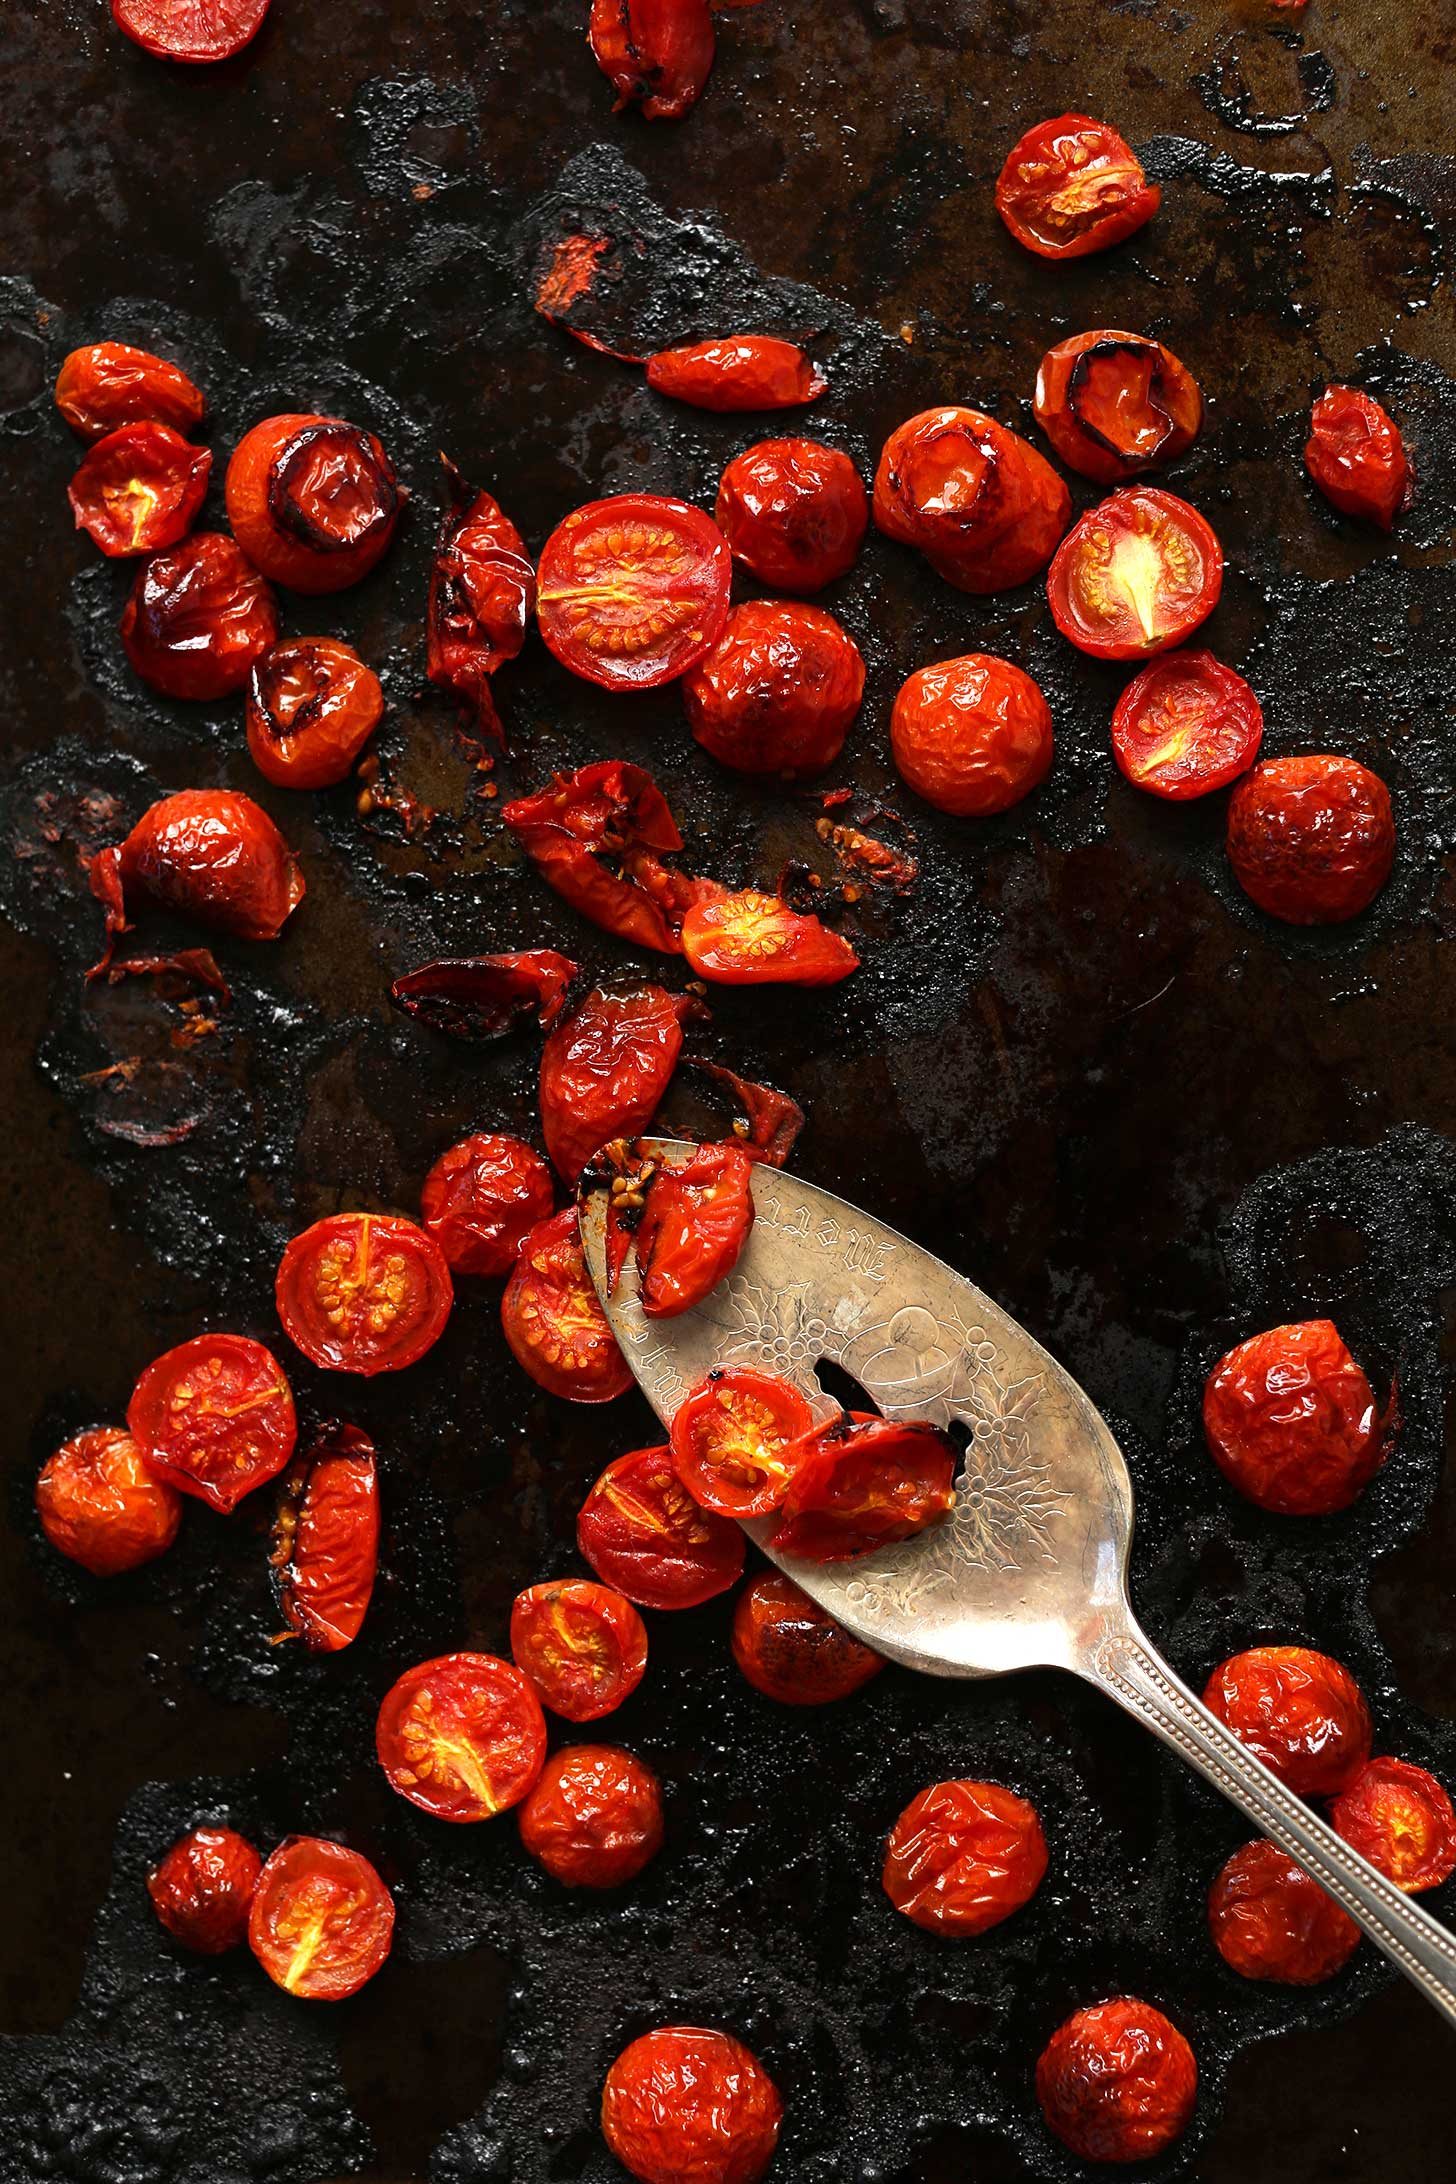 Baking sheet with freshly roasted cherry tomatoes for gluten-free pasta salad